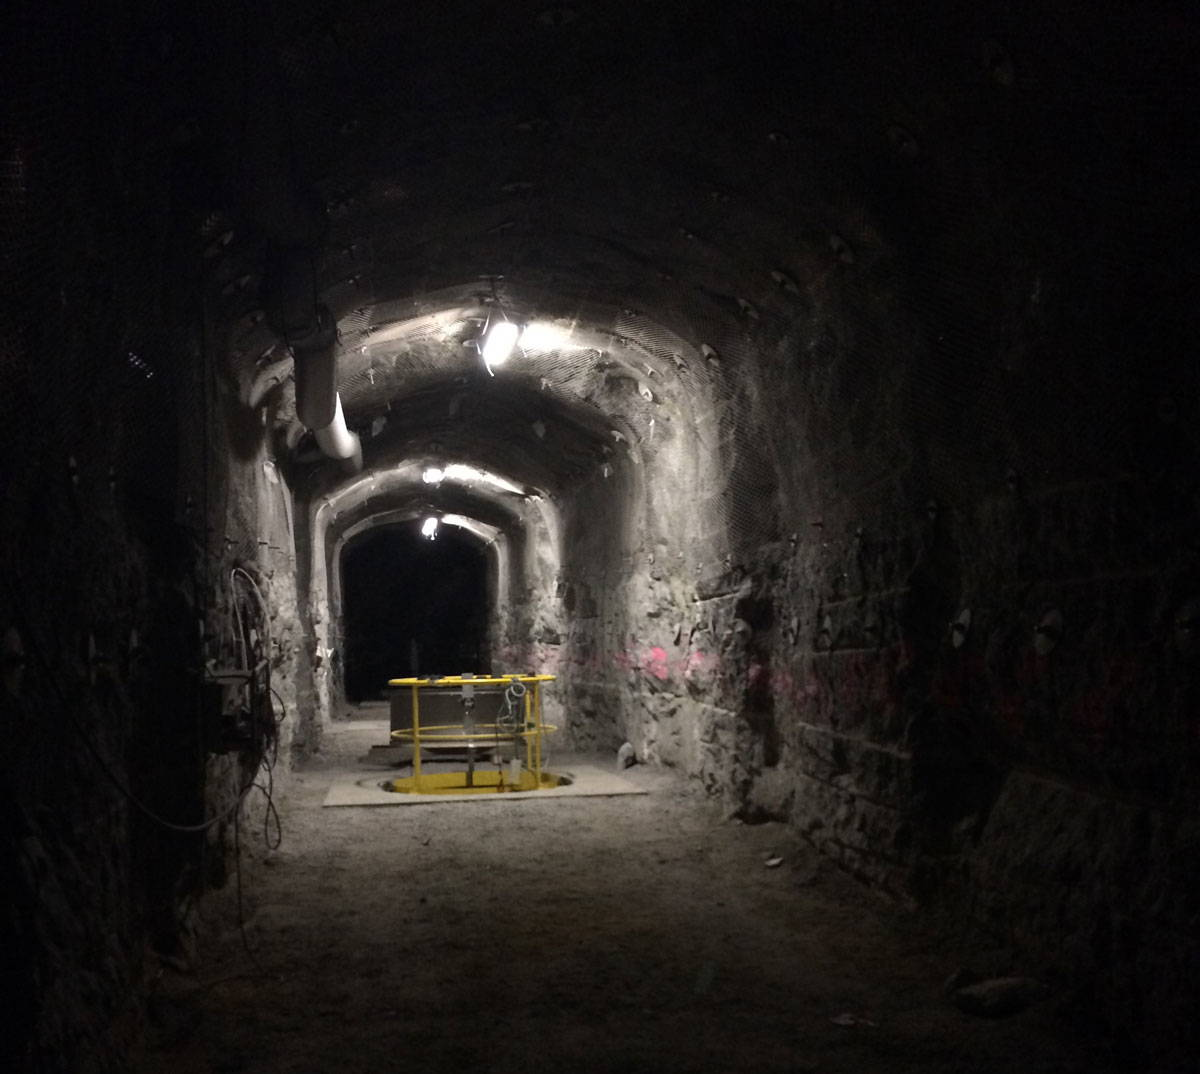 A dark concrete tunnel with yellow equipment.